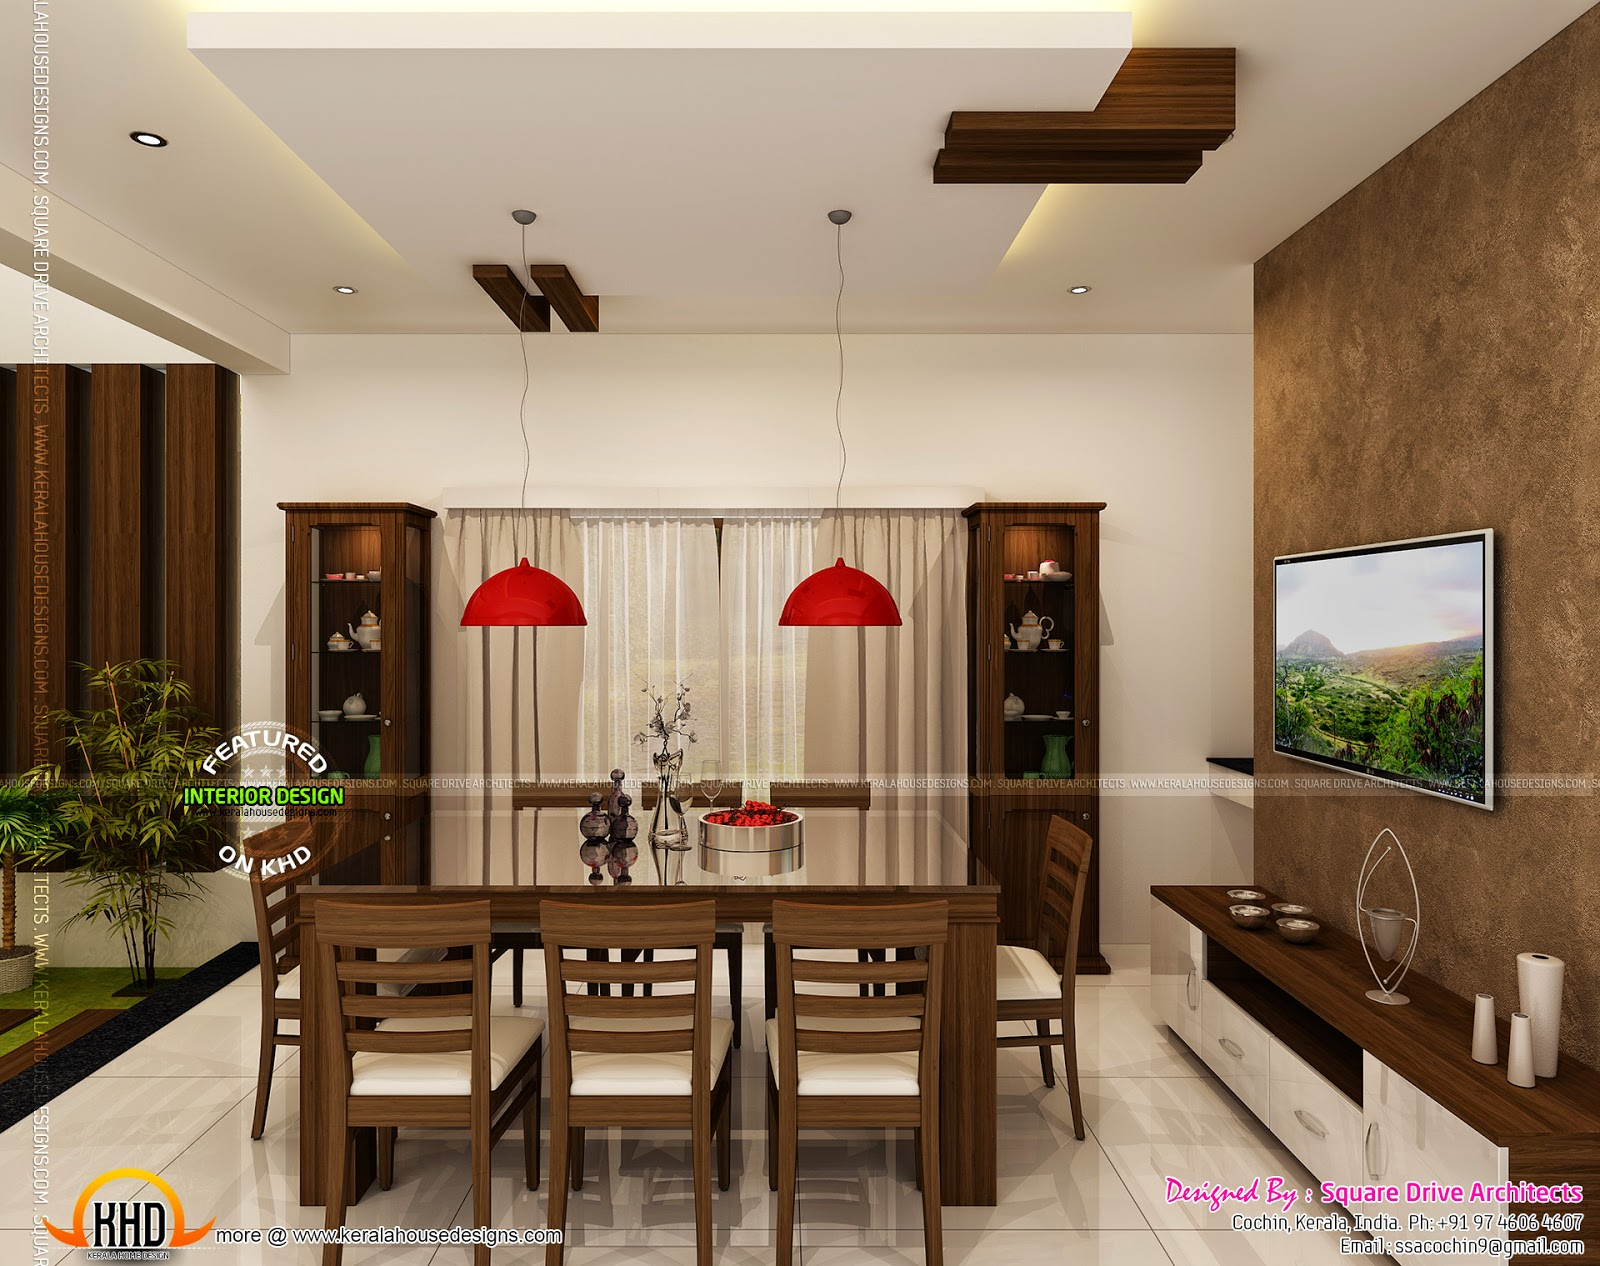 Home interiors designs - Kerala home design and floor plans